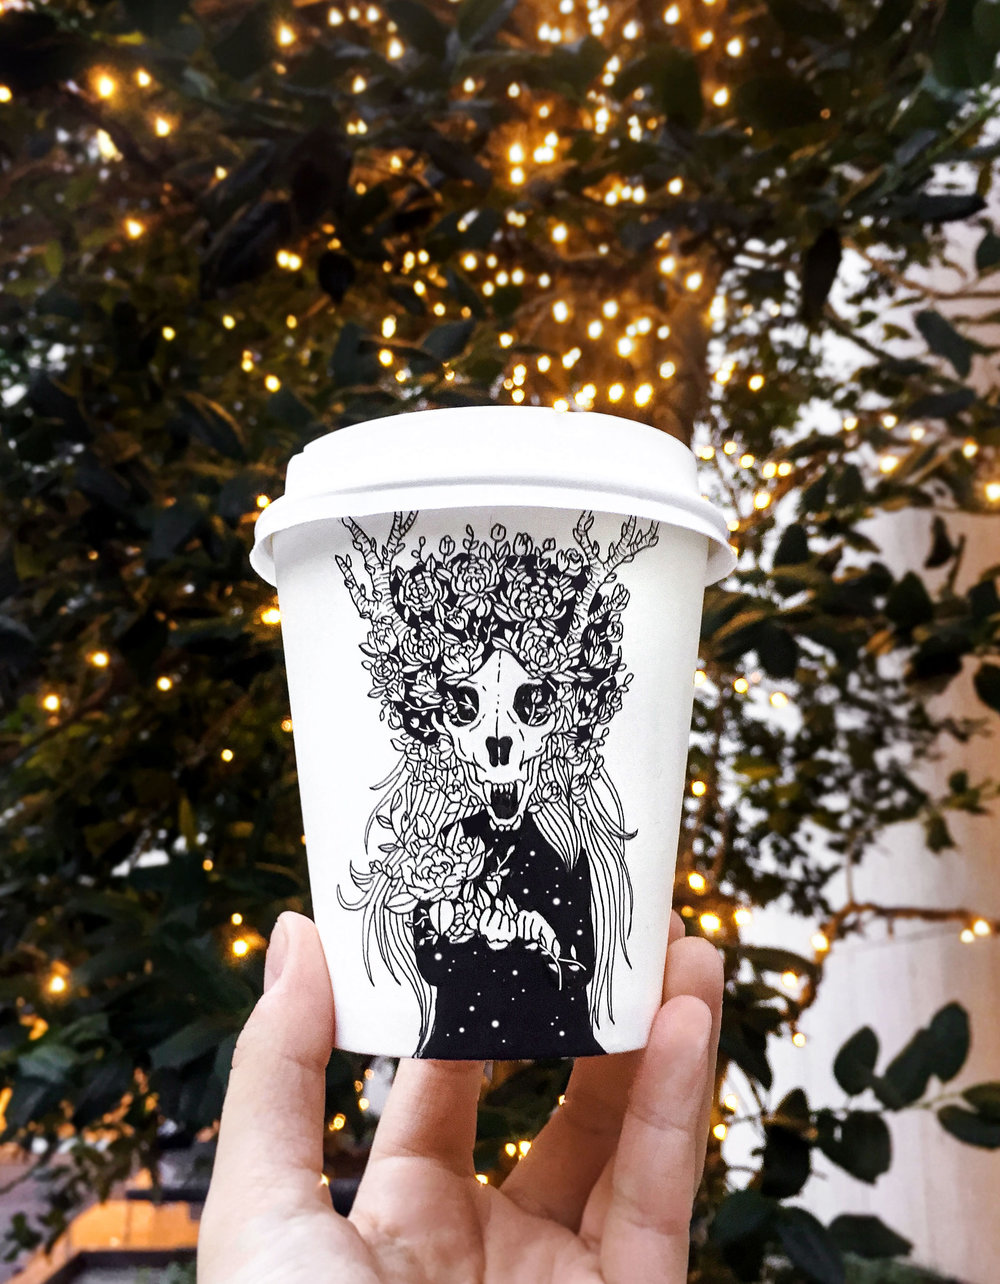 Drawing on a coffee cup